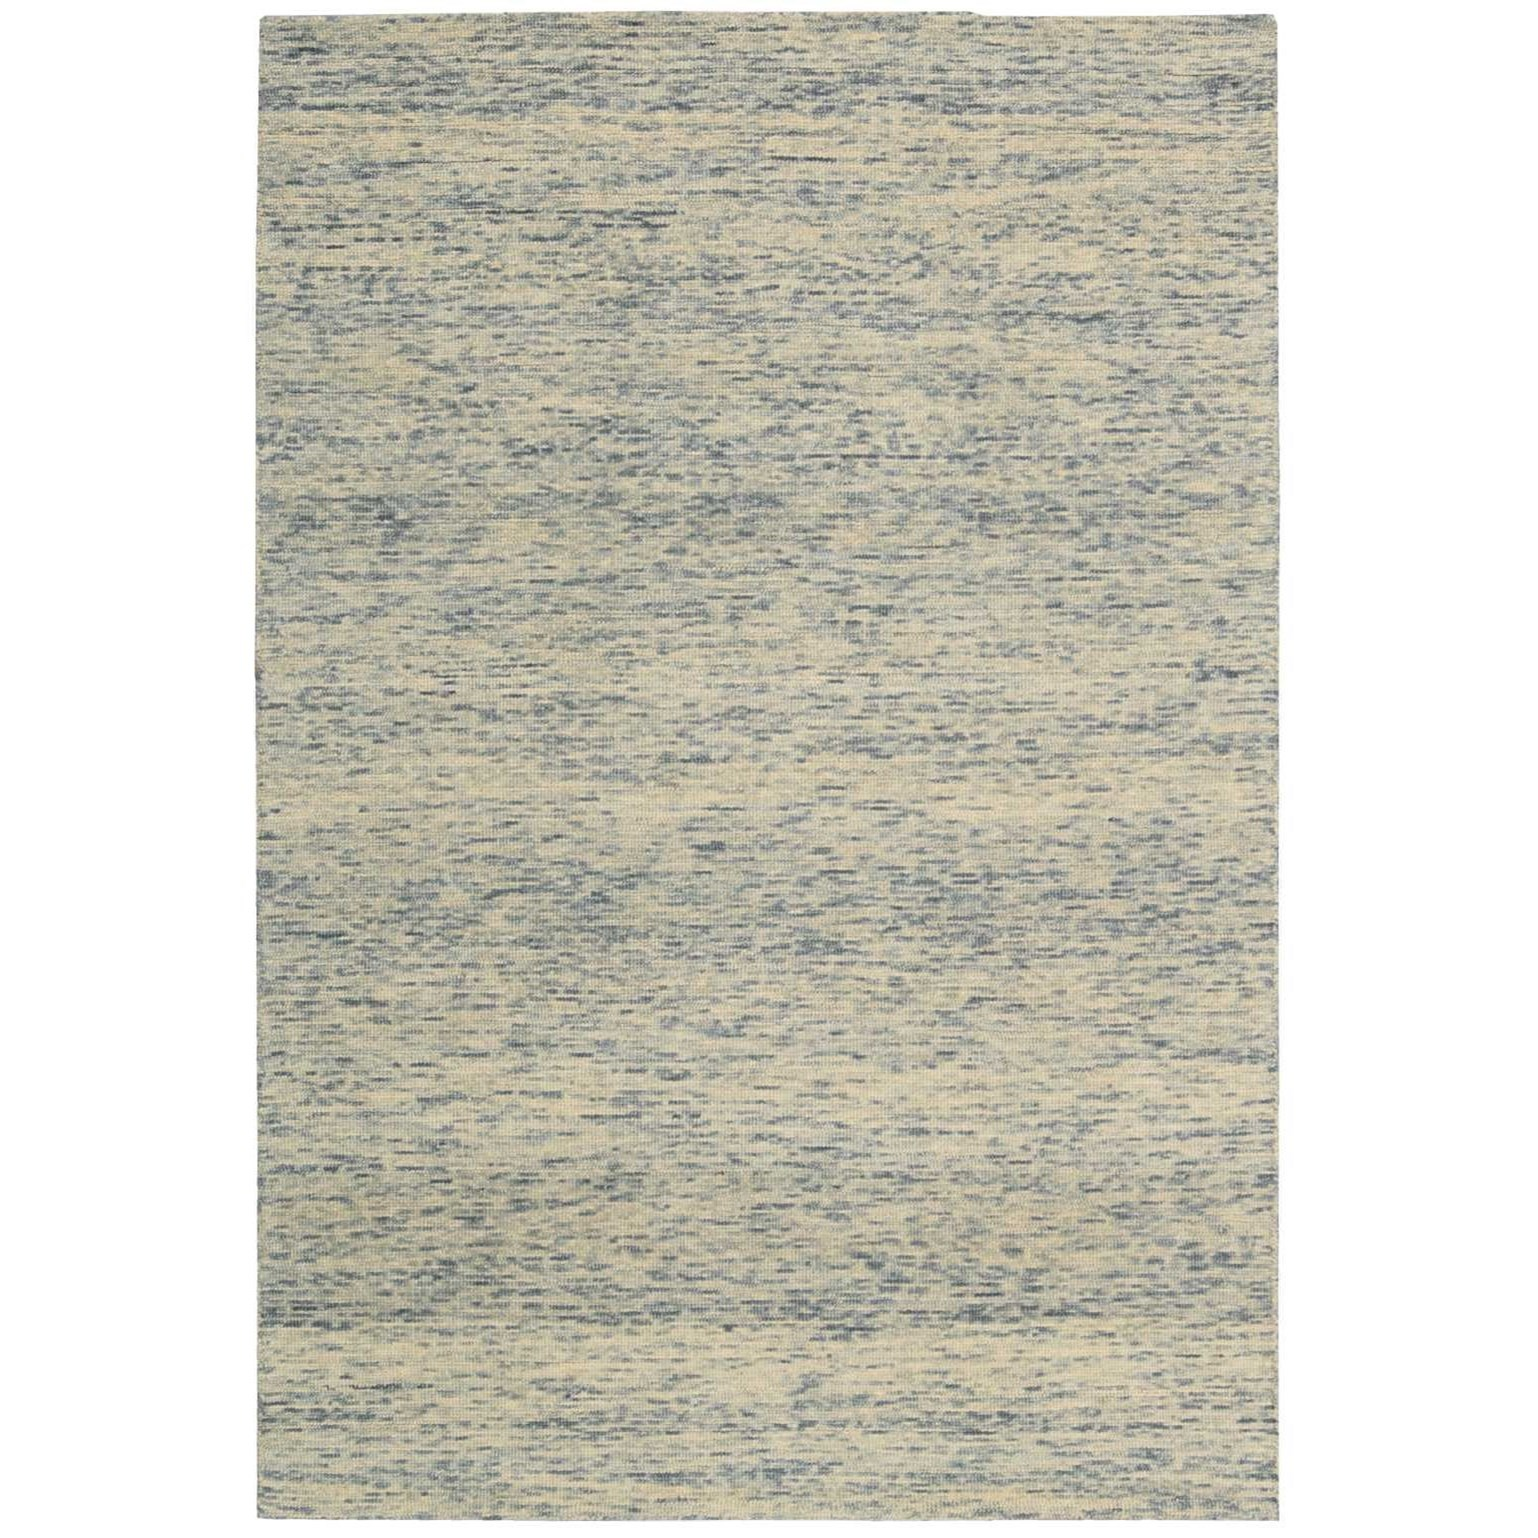 "Sterling 2'6"" x 4' Ocean Rectangle Rug by Nourison at Home Collections Furniture"